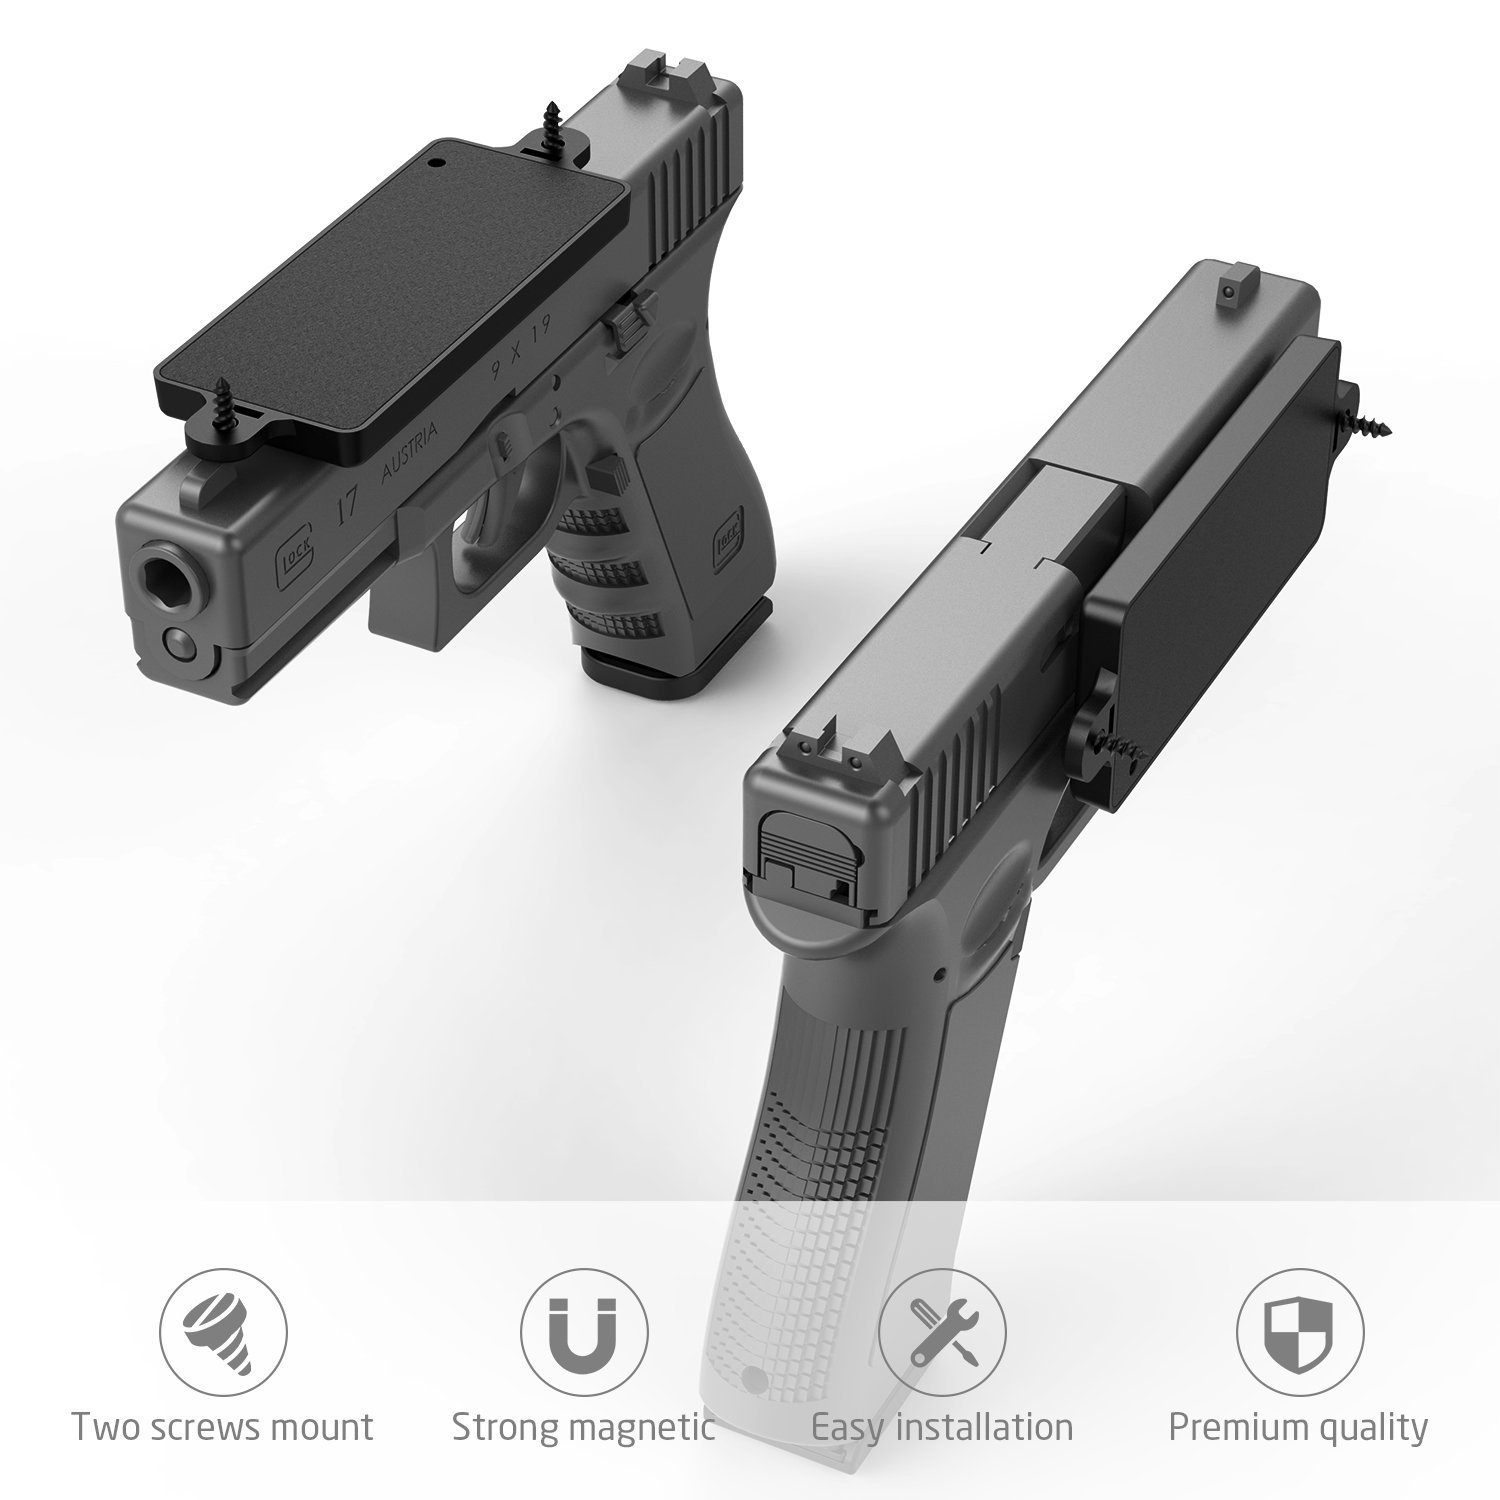 Magnetic Gun Mount, Merssyria Concealed Rubber Coated Gun Accessories 35 Lbs Rated for Vehicle and Home Handgun Pistol Revolver Magazine in Car,Truck, Wall, Vault, Bed,Bedside, Desk...